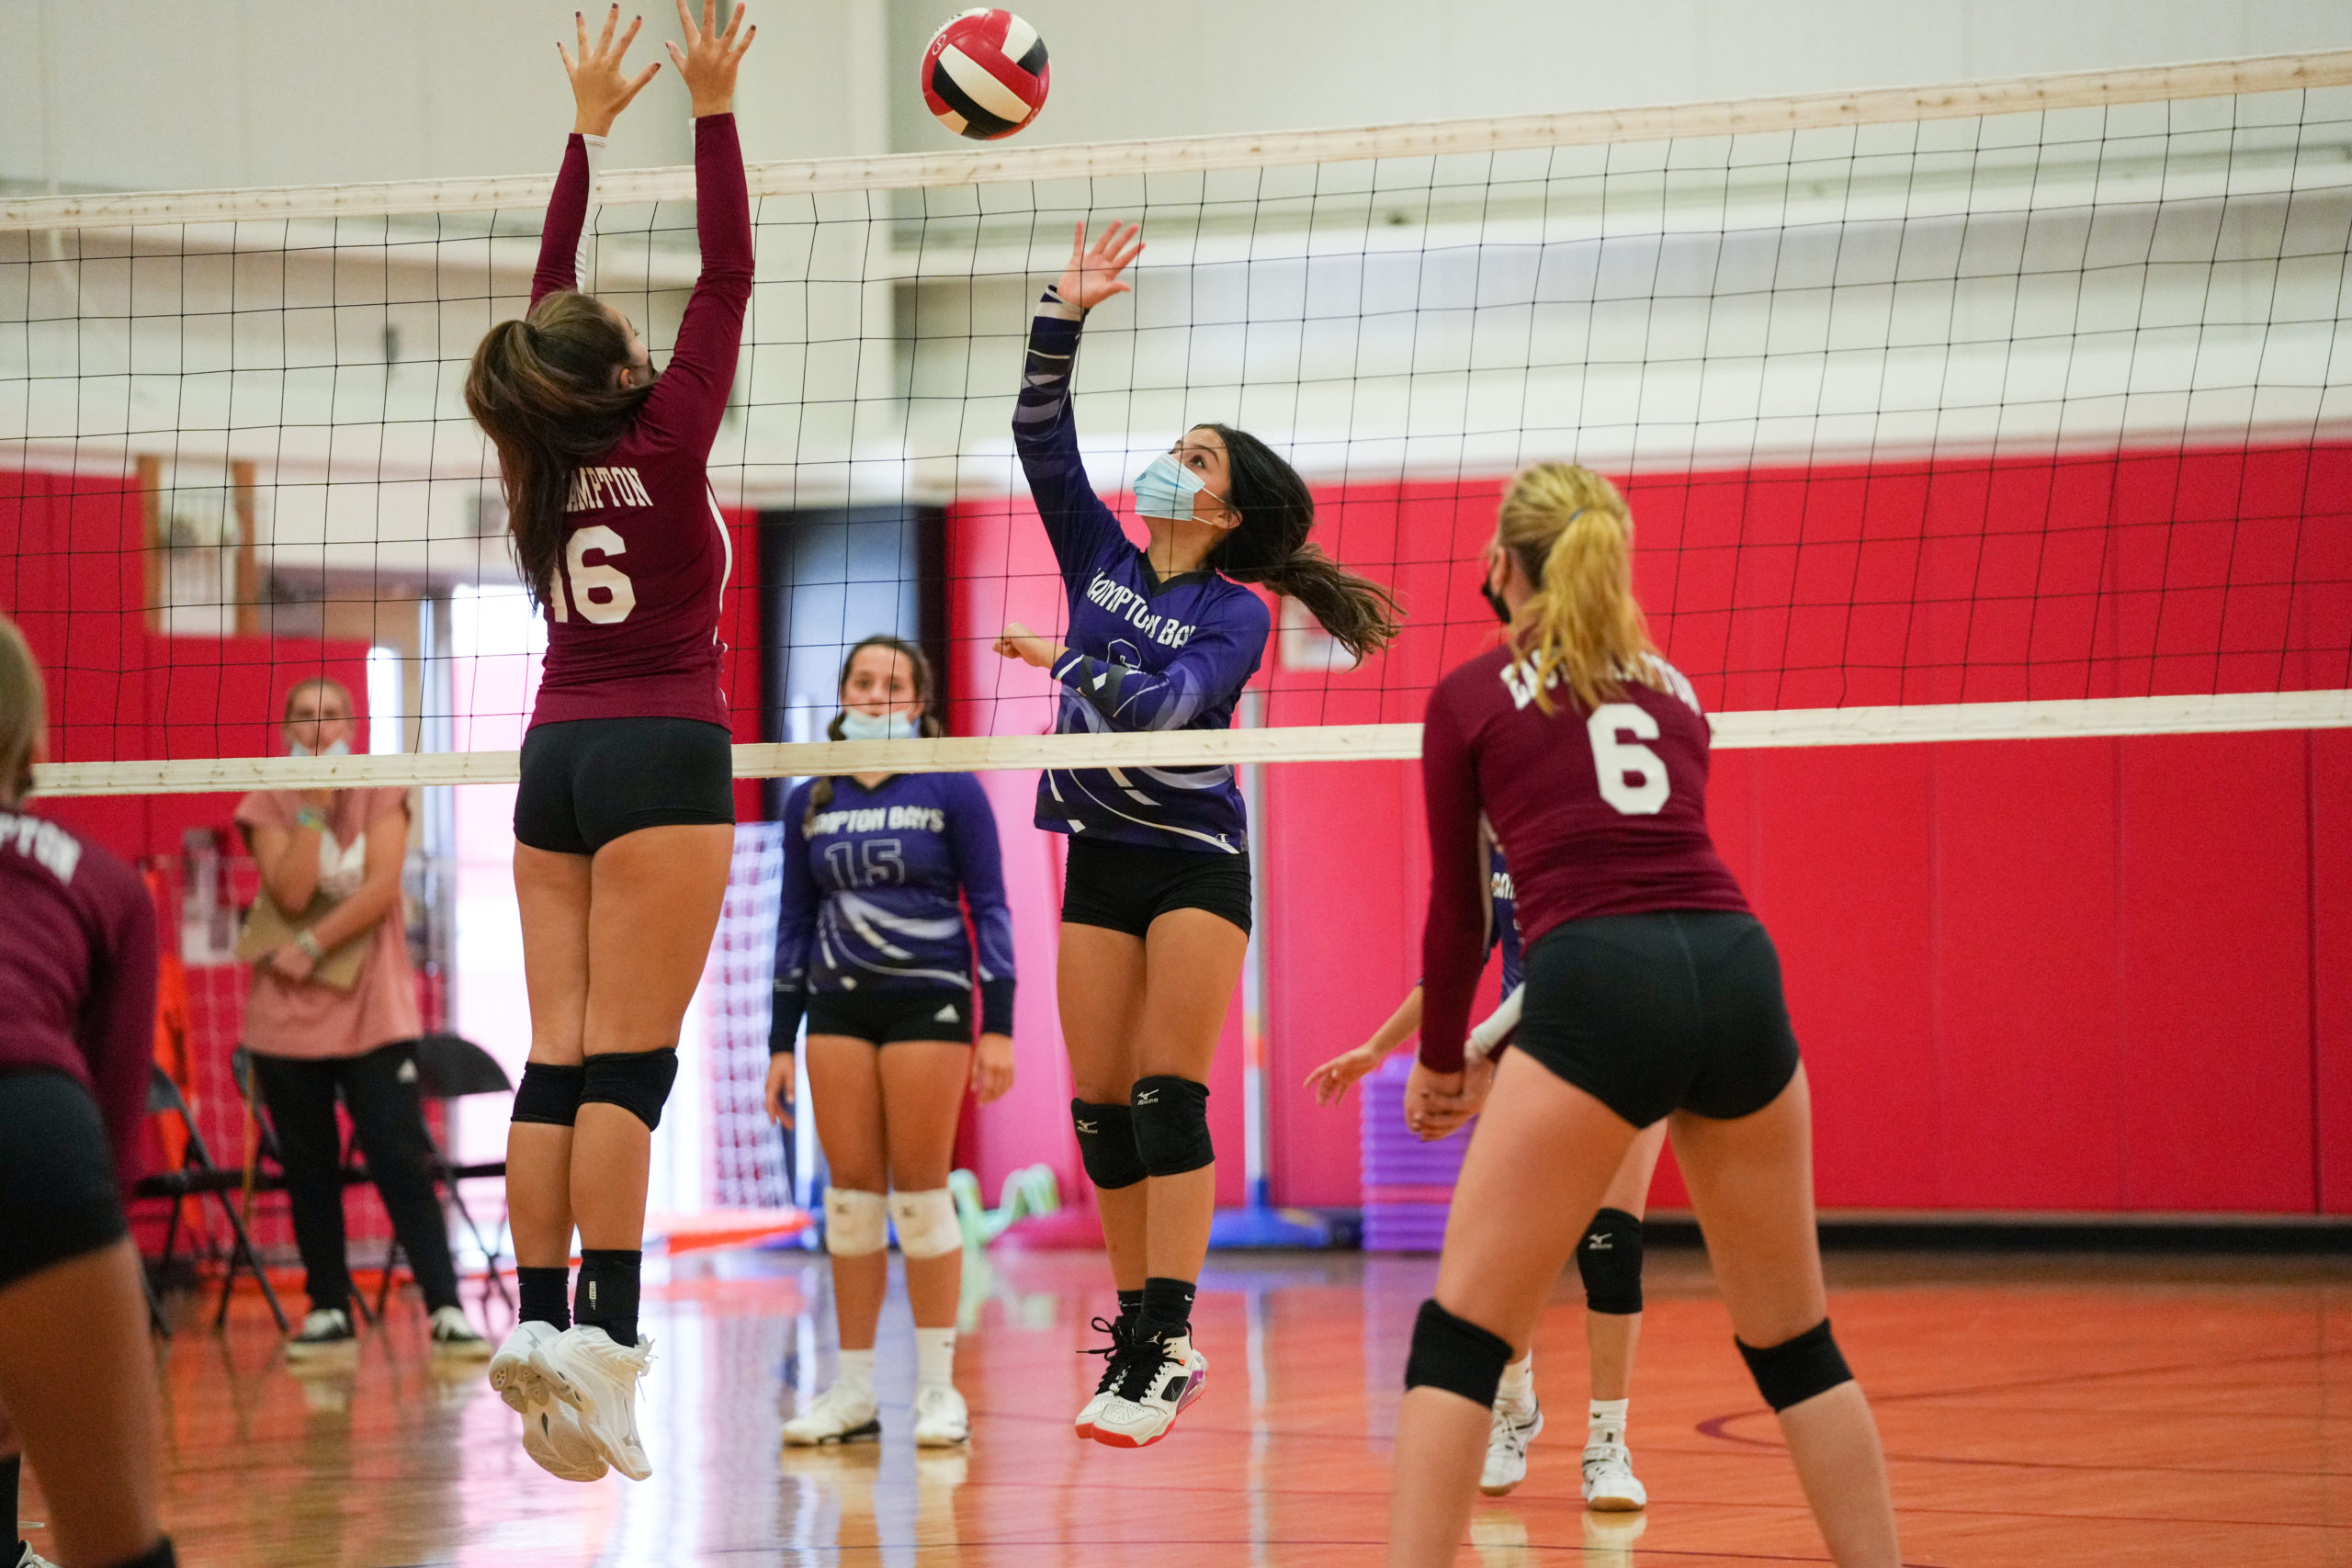 Alex Rojas of Hampton Bays looks to get the ball over the net.